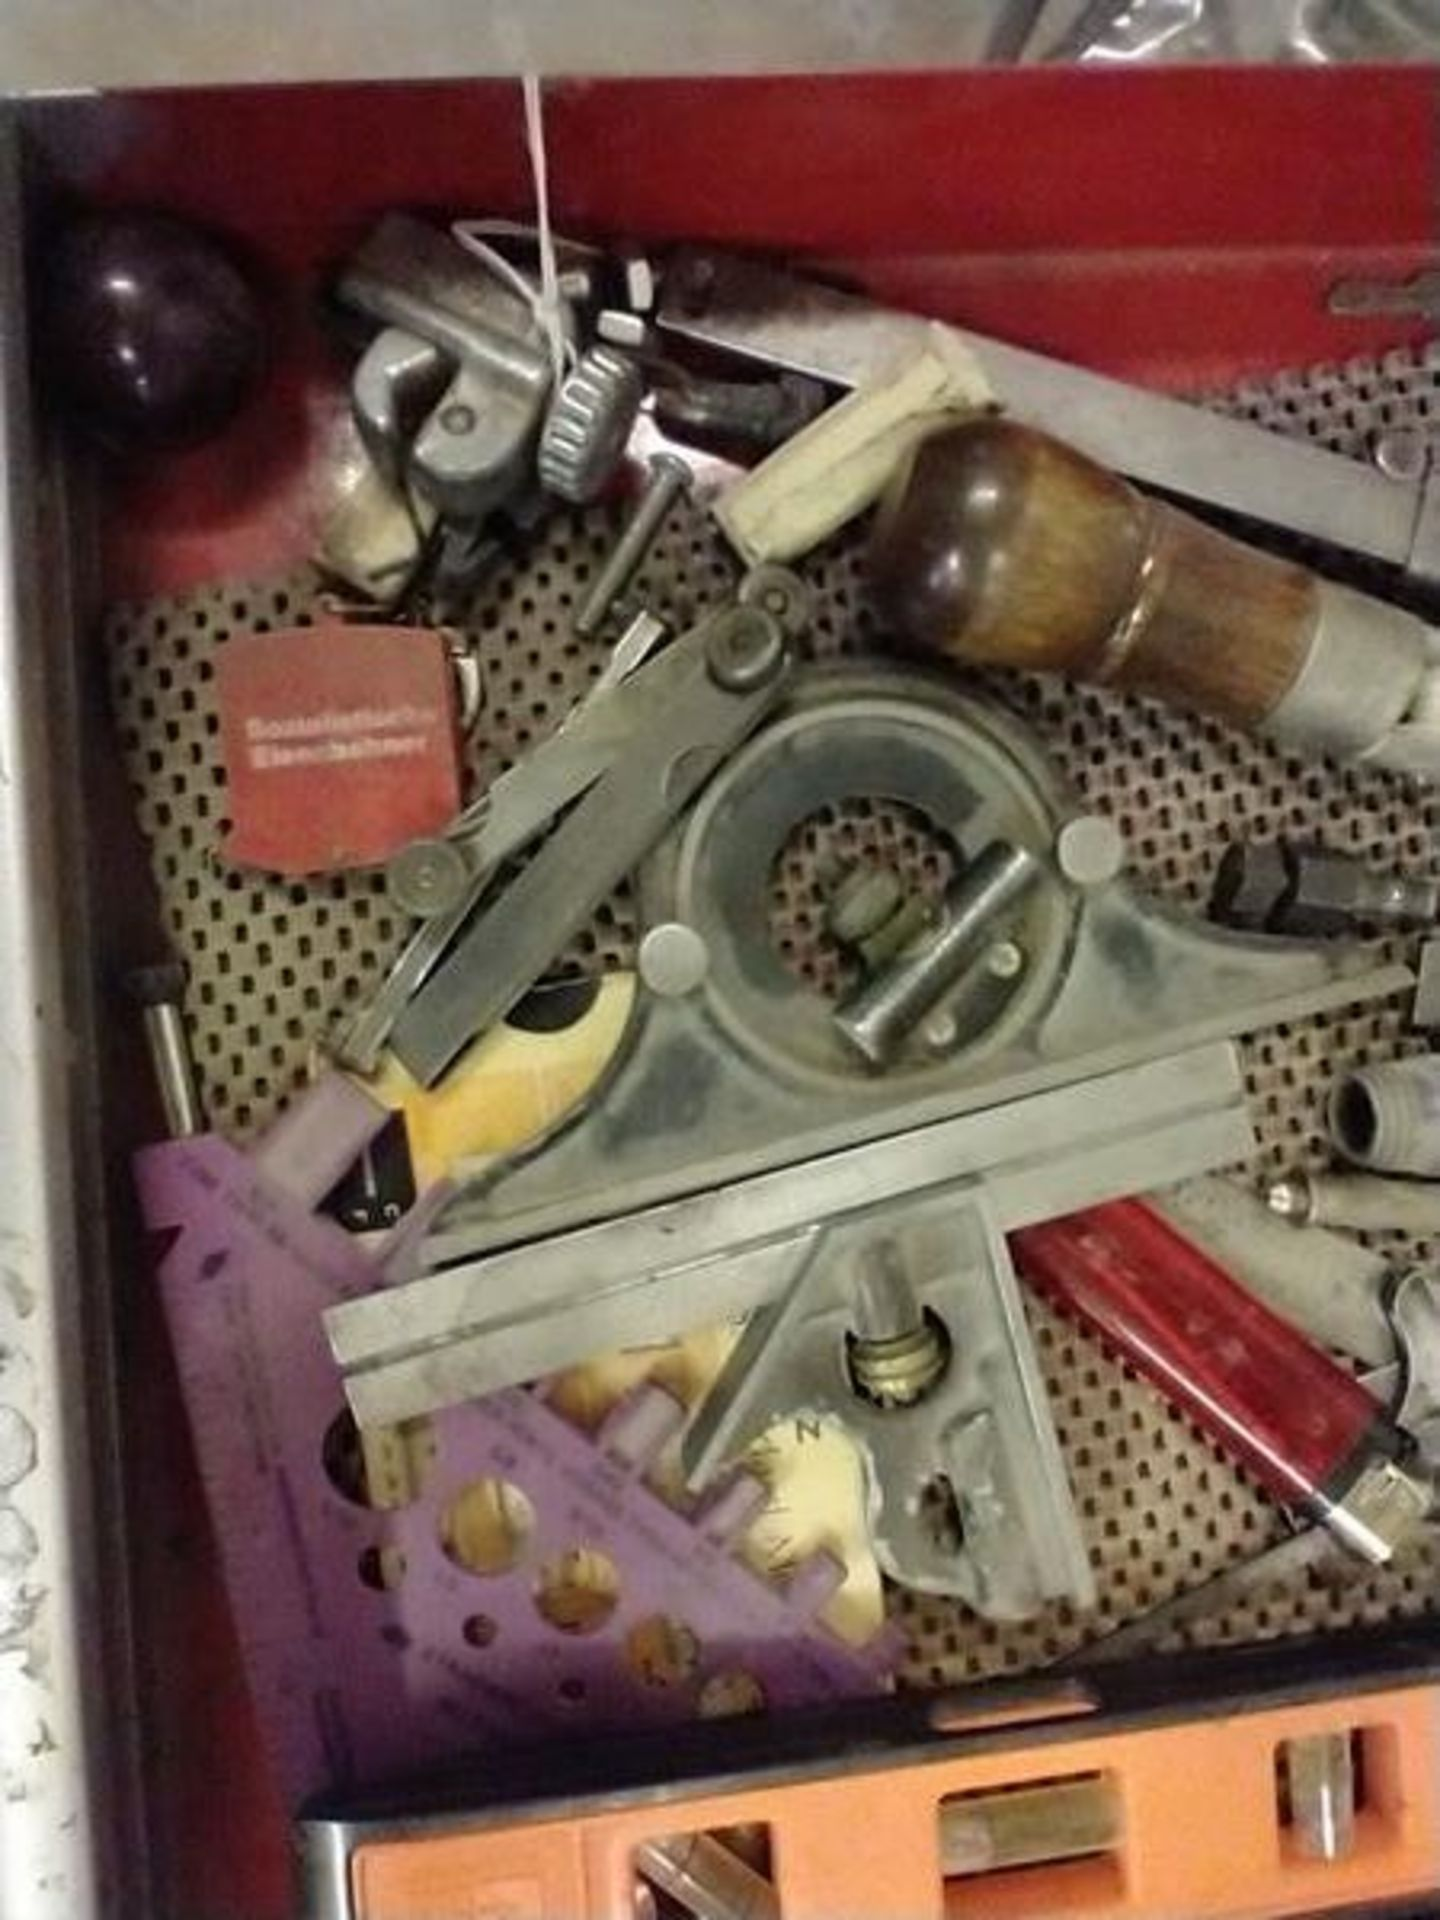 LOT OF TOOLS AND MISC IN DRAWER - Image 3 of 5